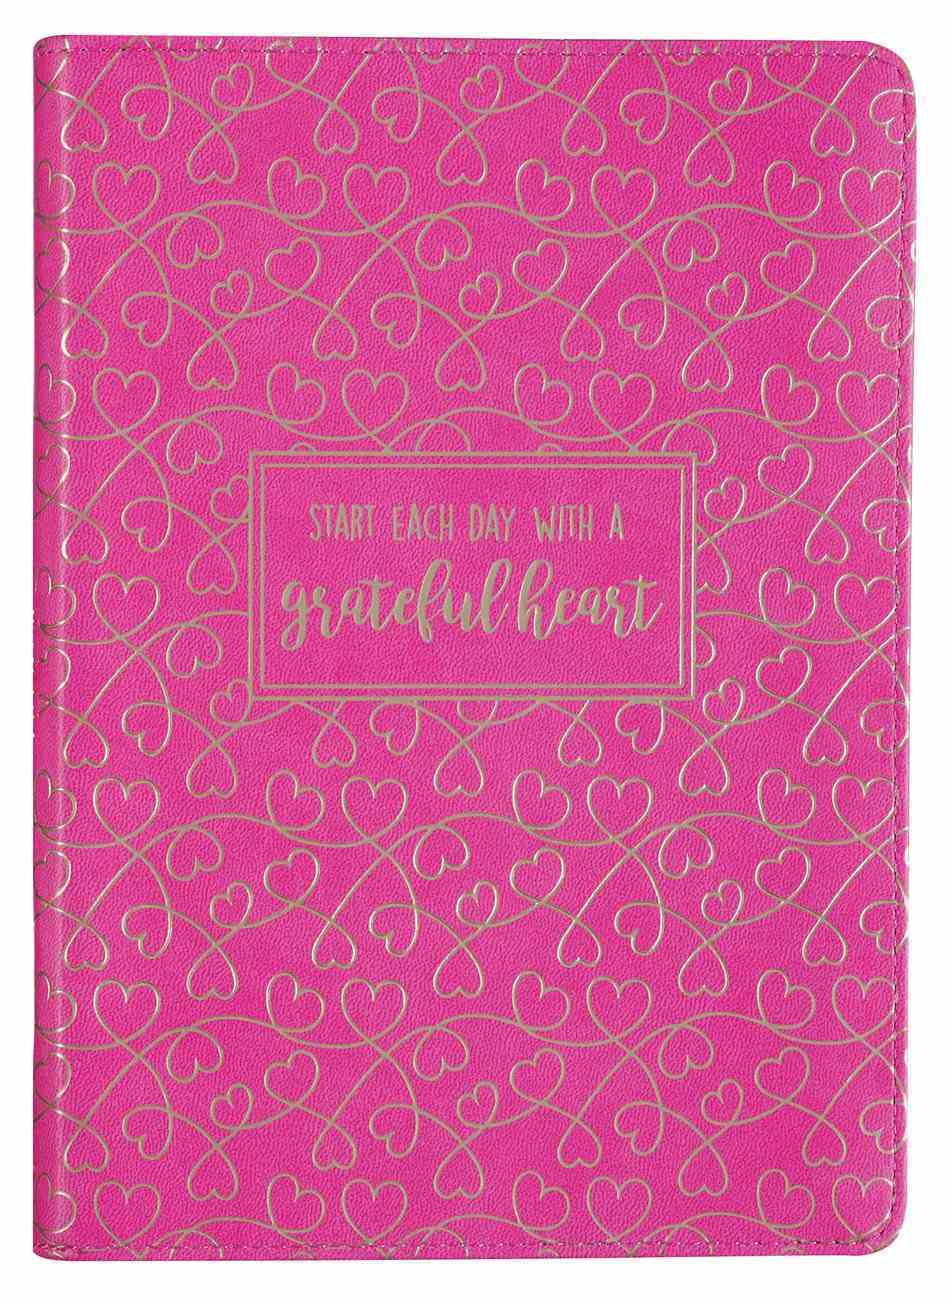 Zippered Journal: Grateful Heart, Pink Imitation Leather